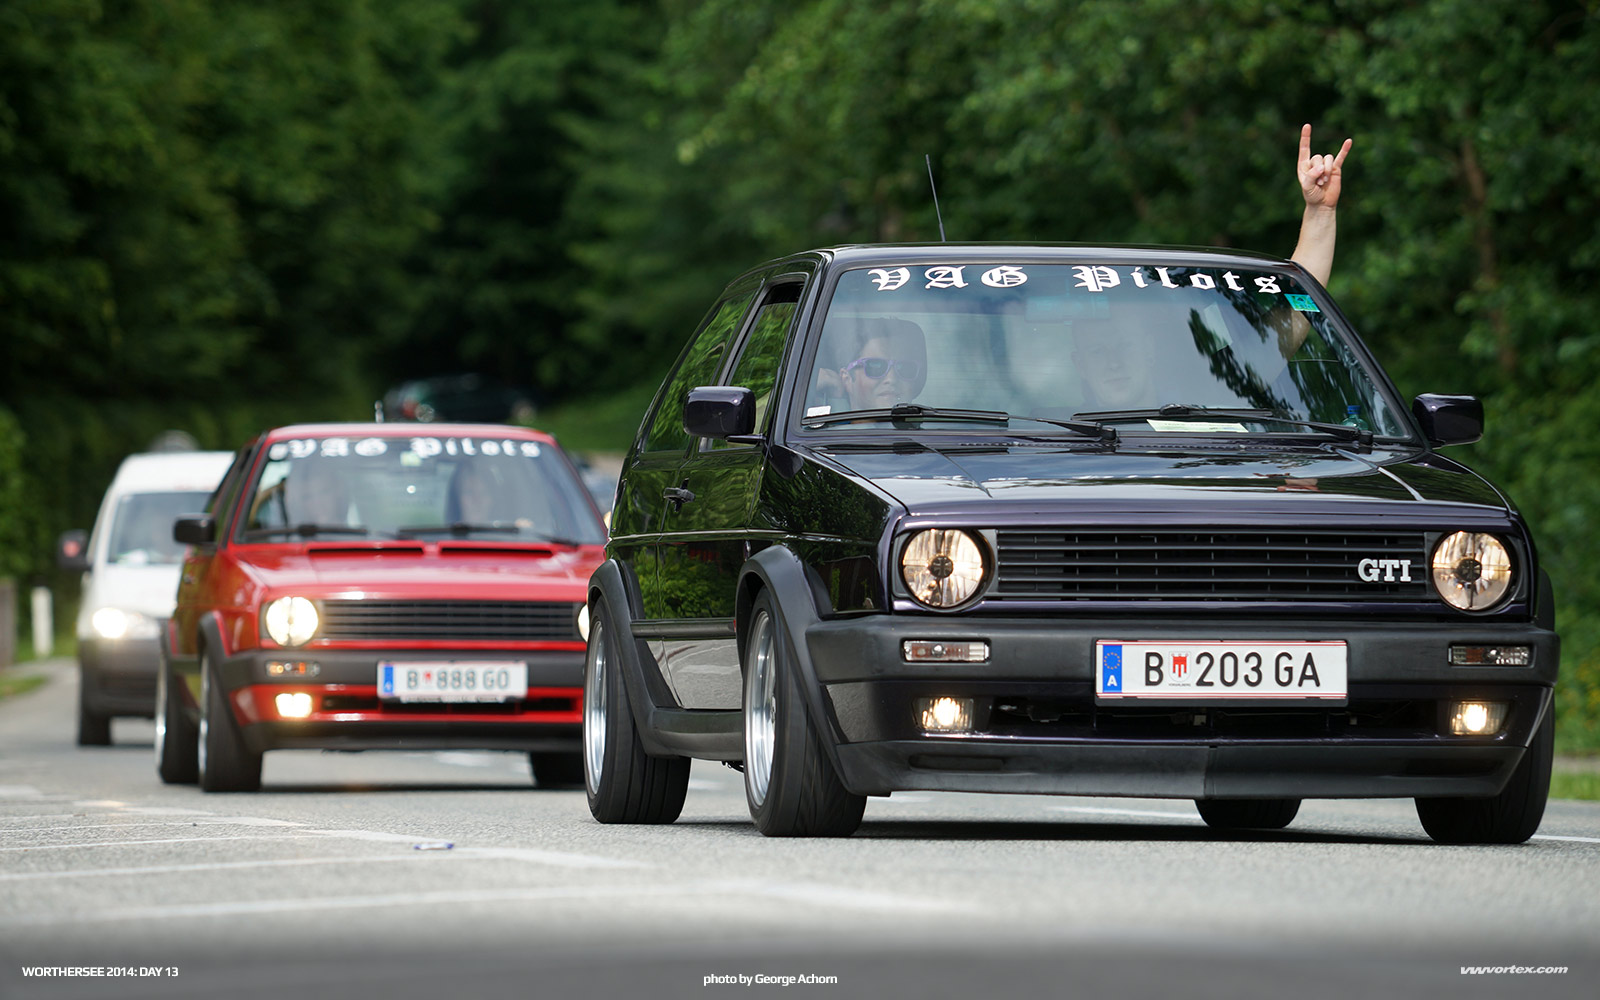 2014 Worthersee Day 14 VW296 215x123